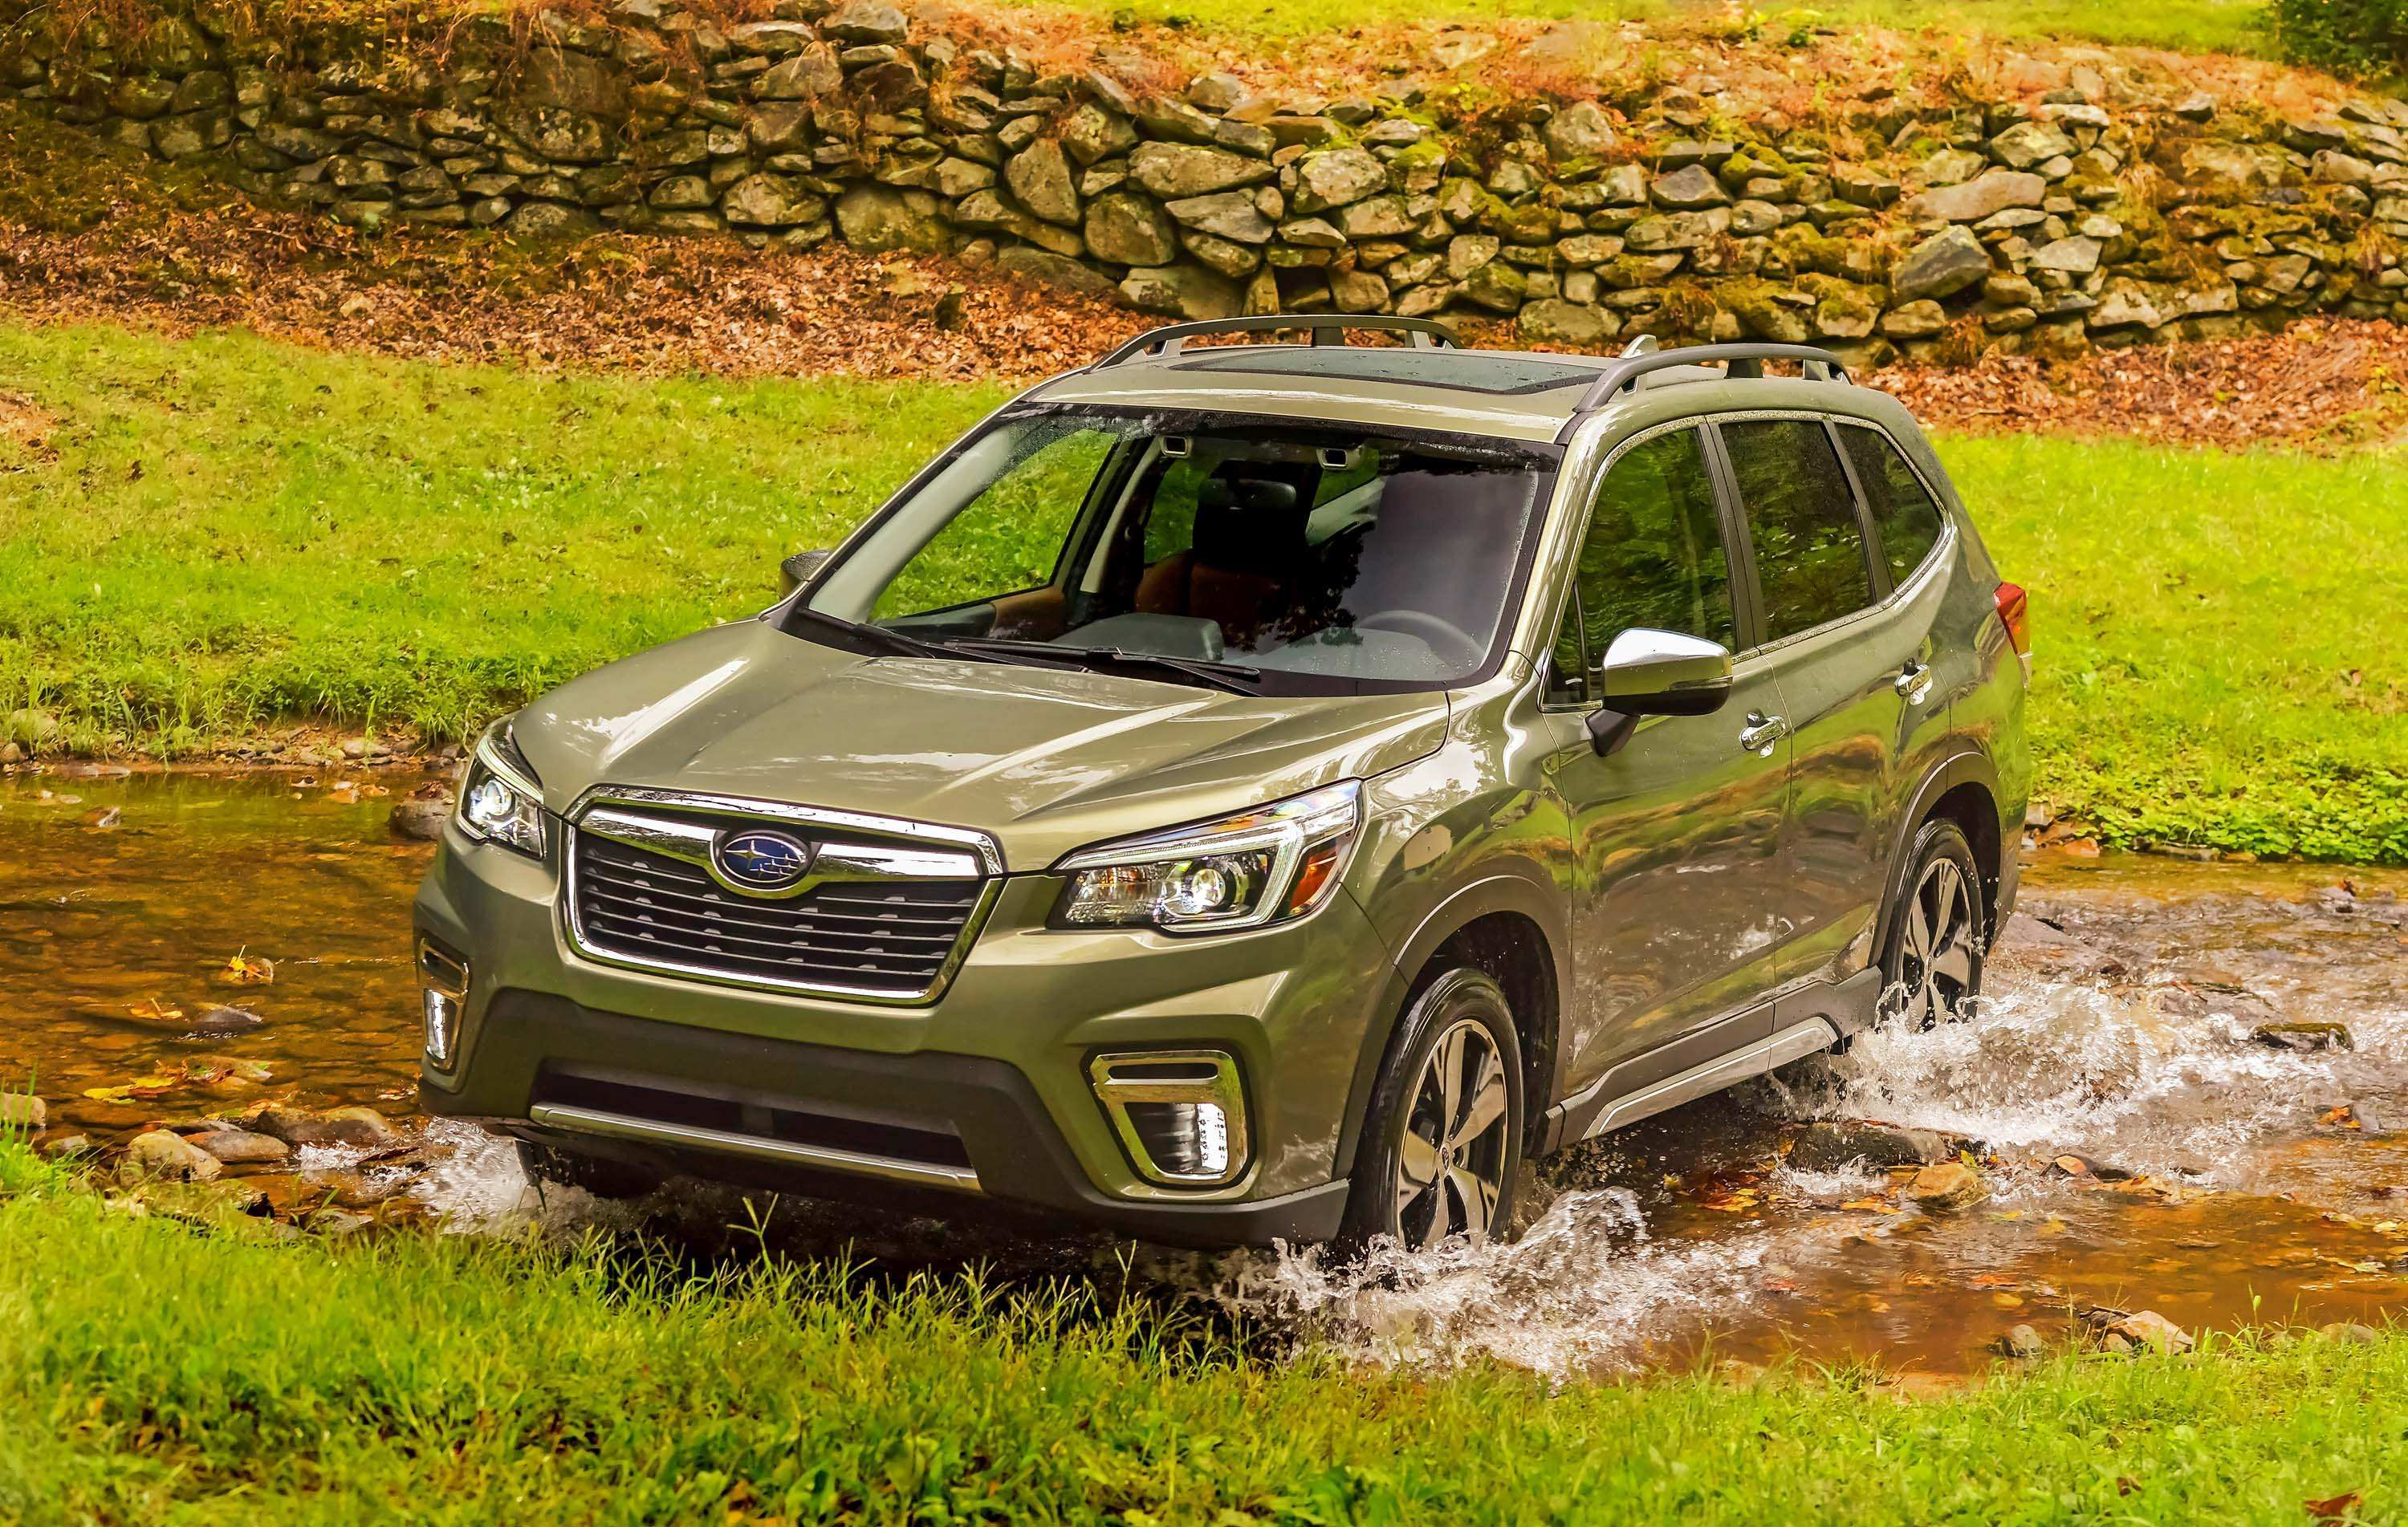 58 New Subaru Forester All New 2020 History